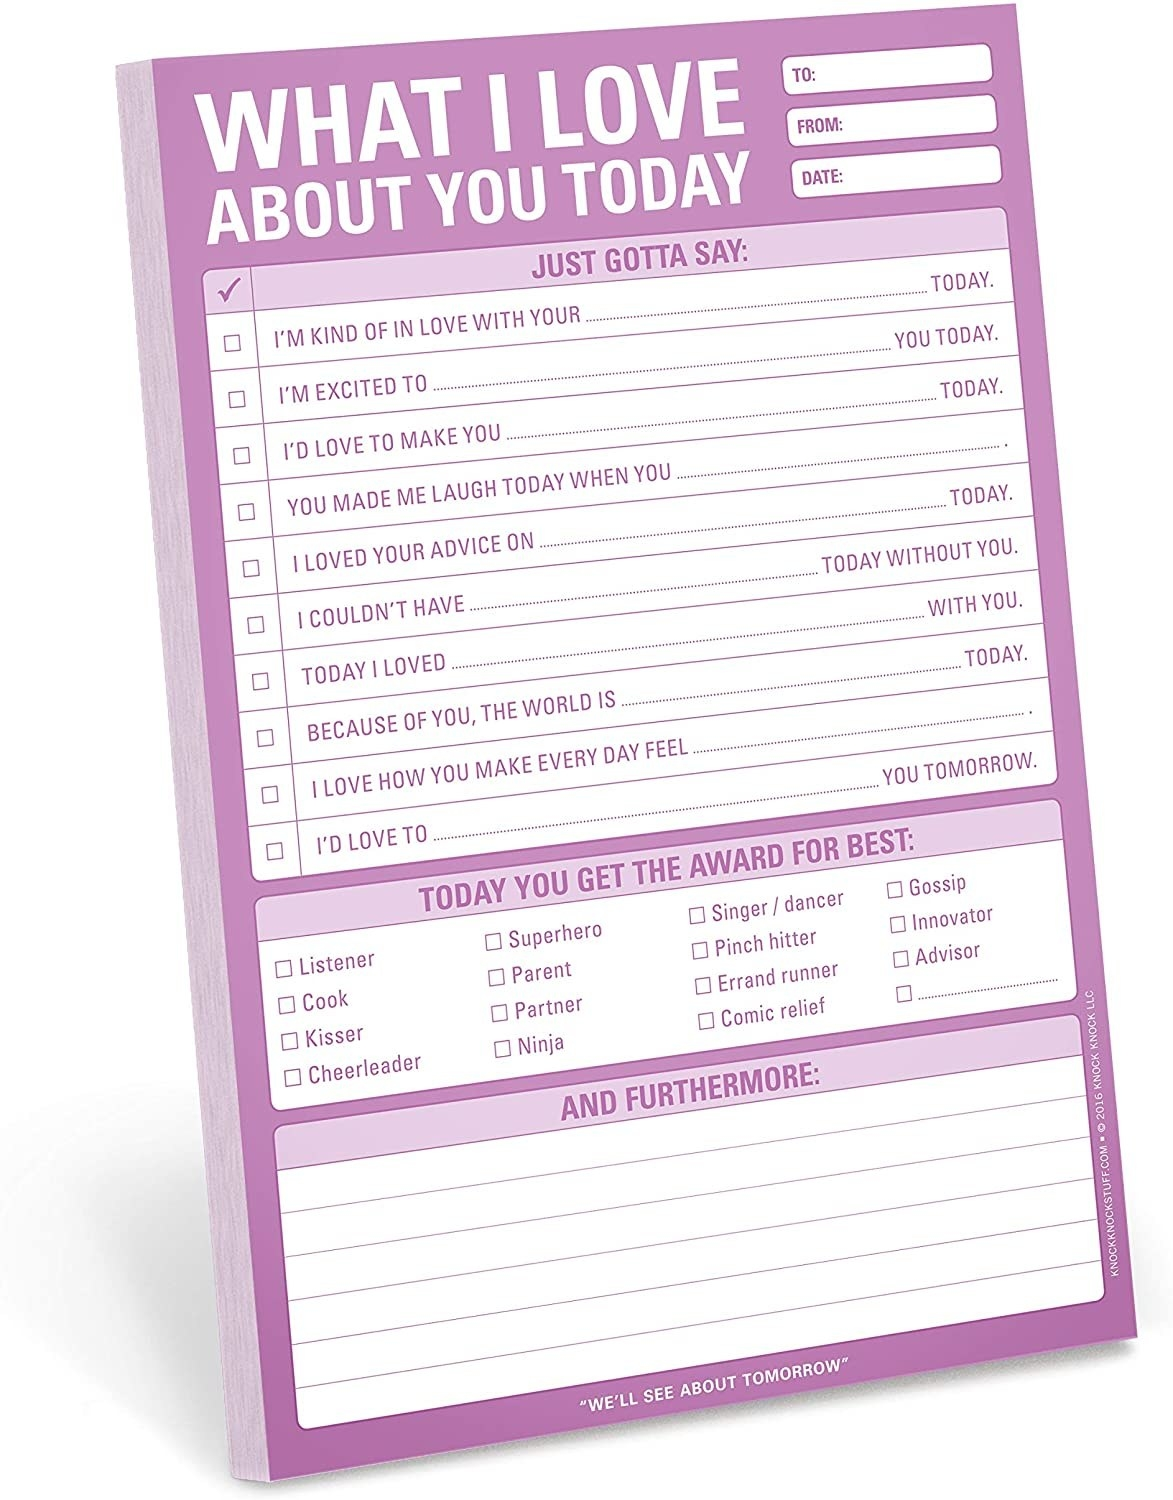 A purple and white checklist full of prompts about compliments for your partner